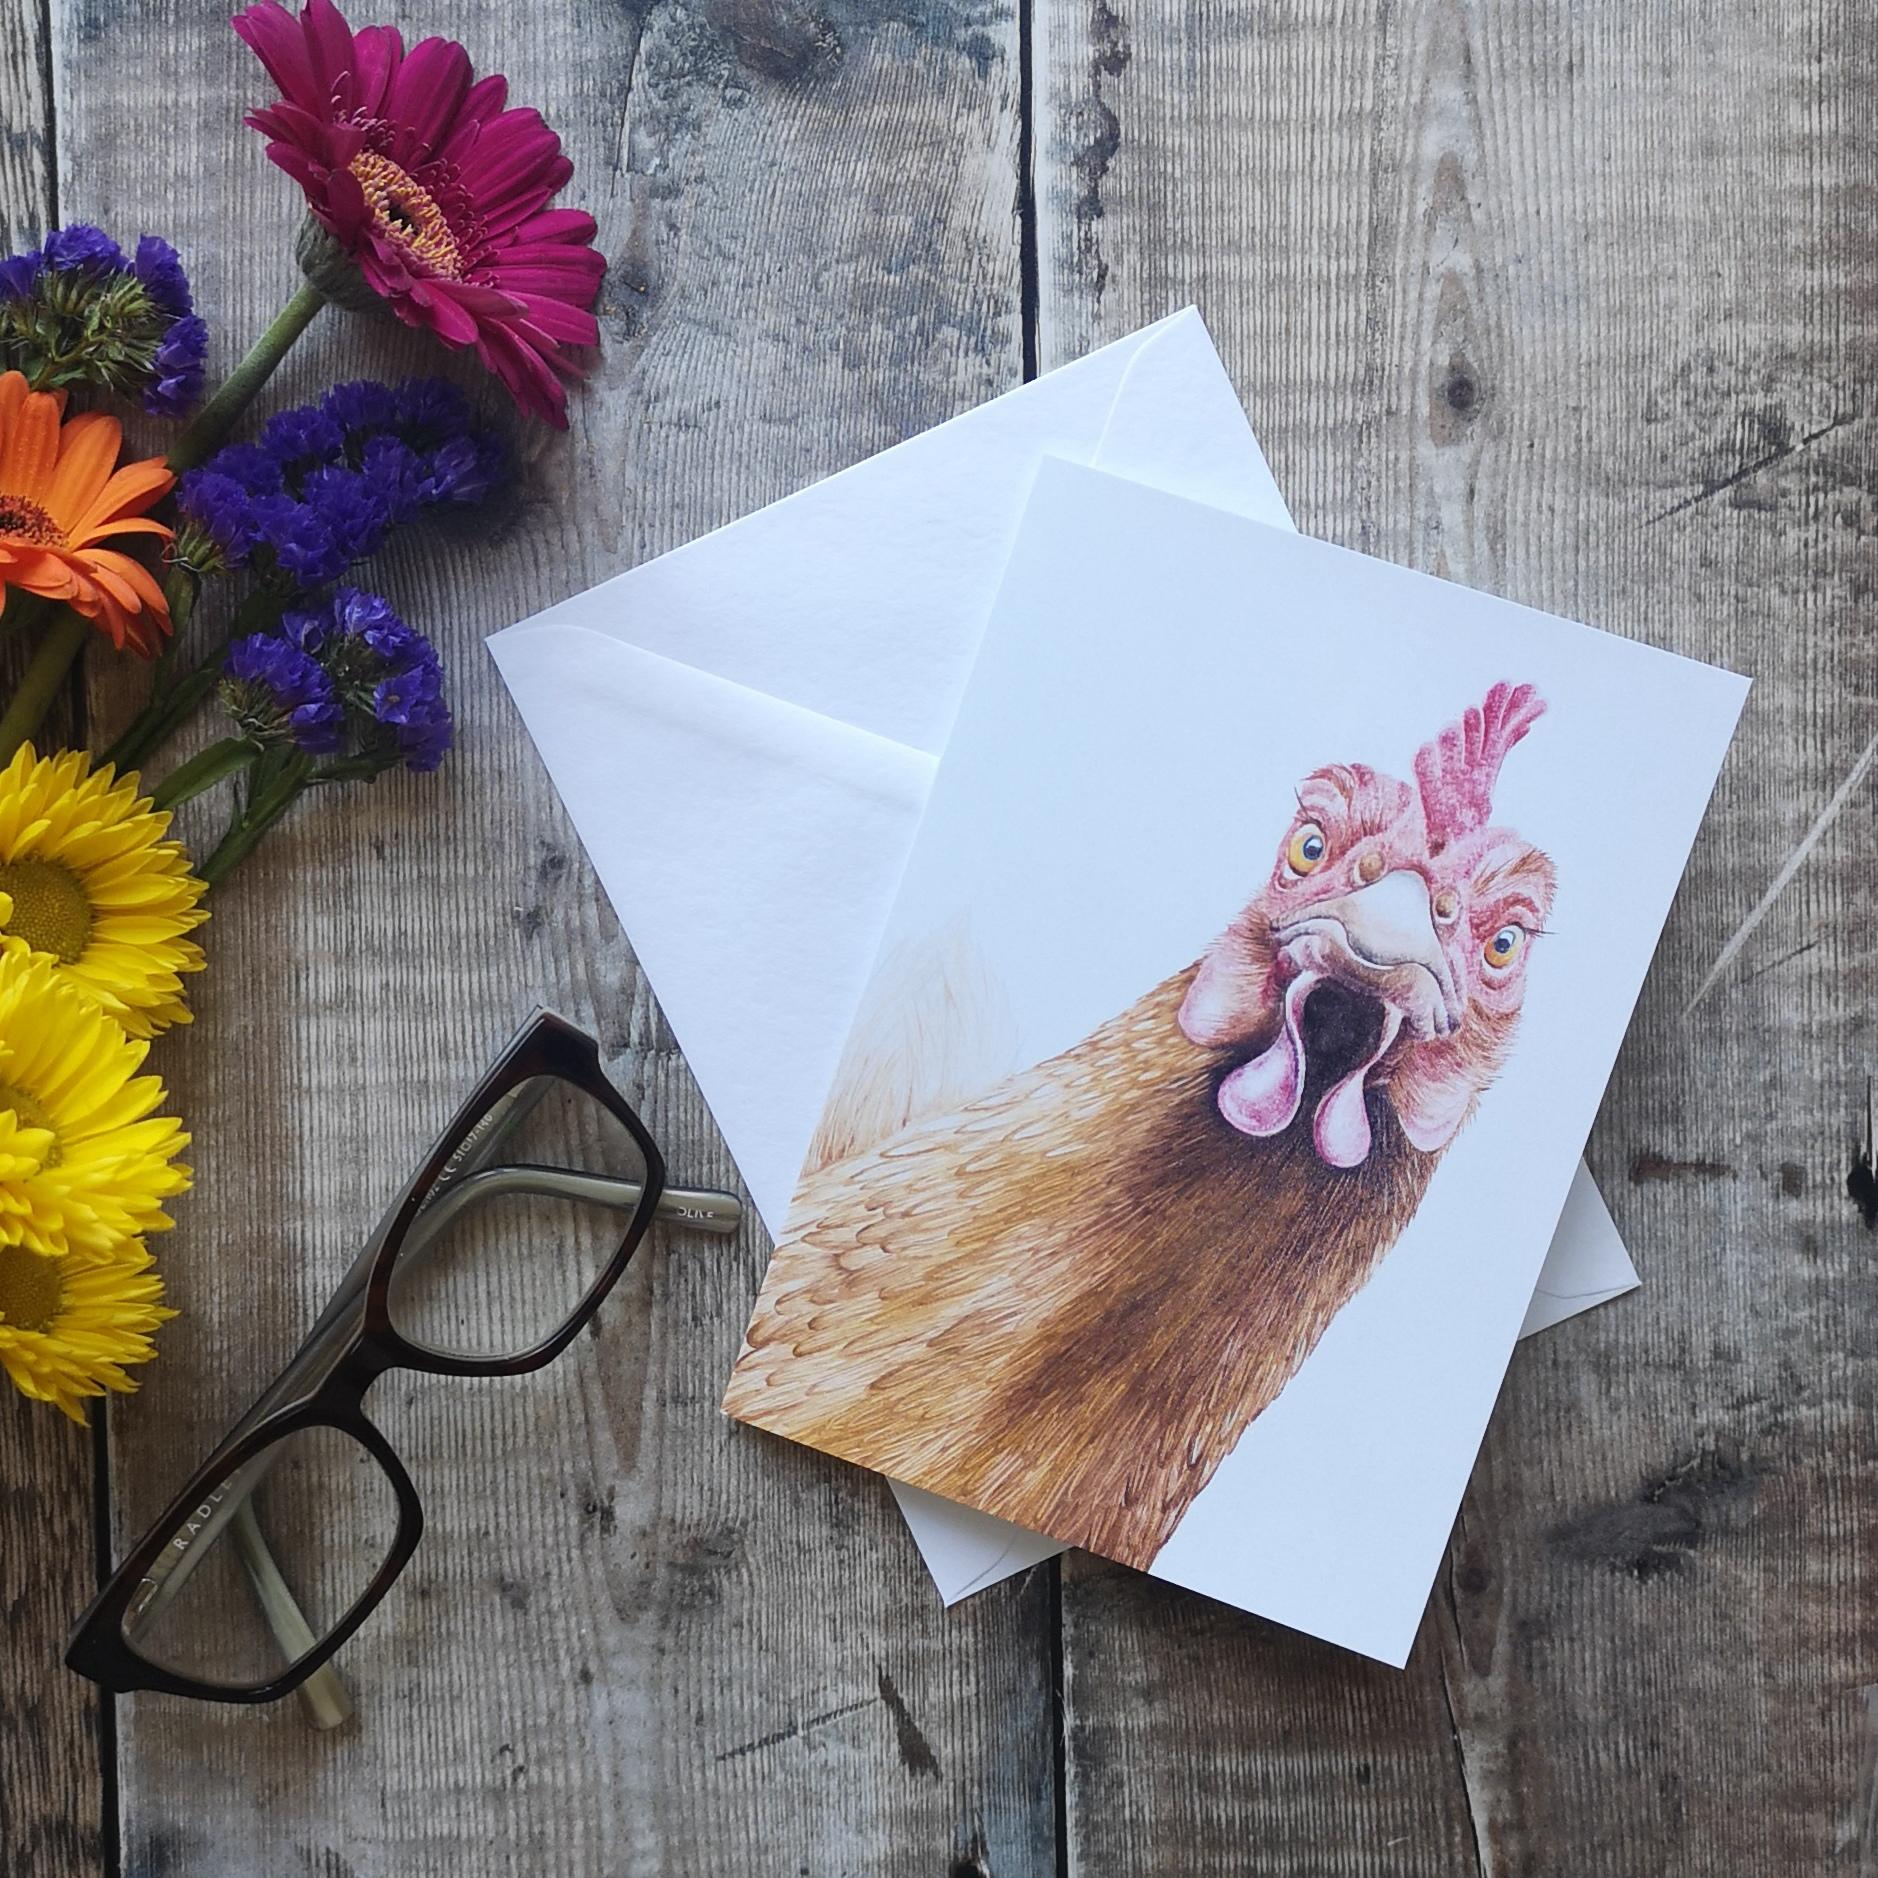 Greeting card with a chicken